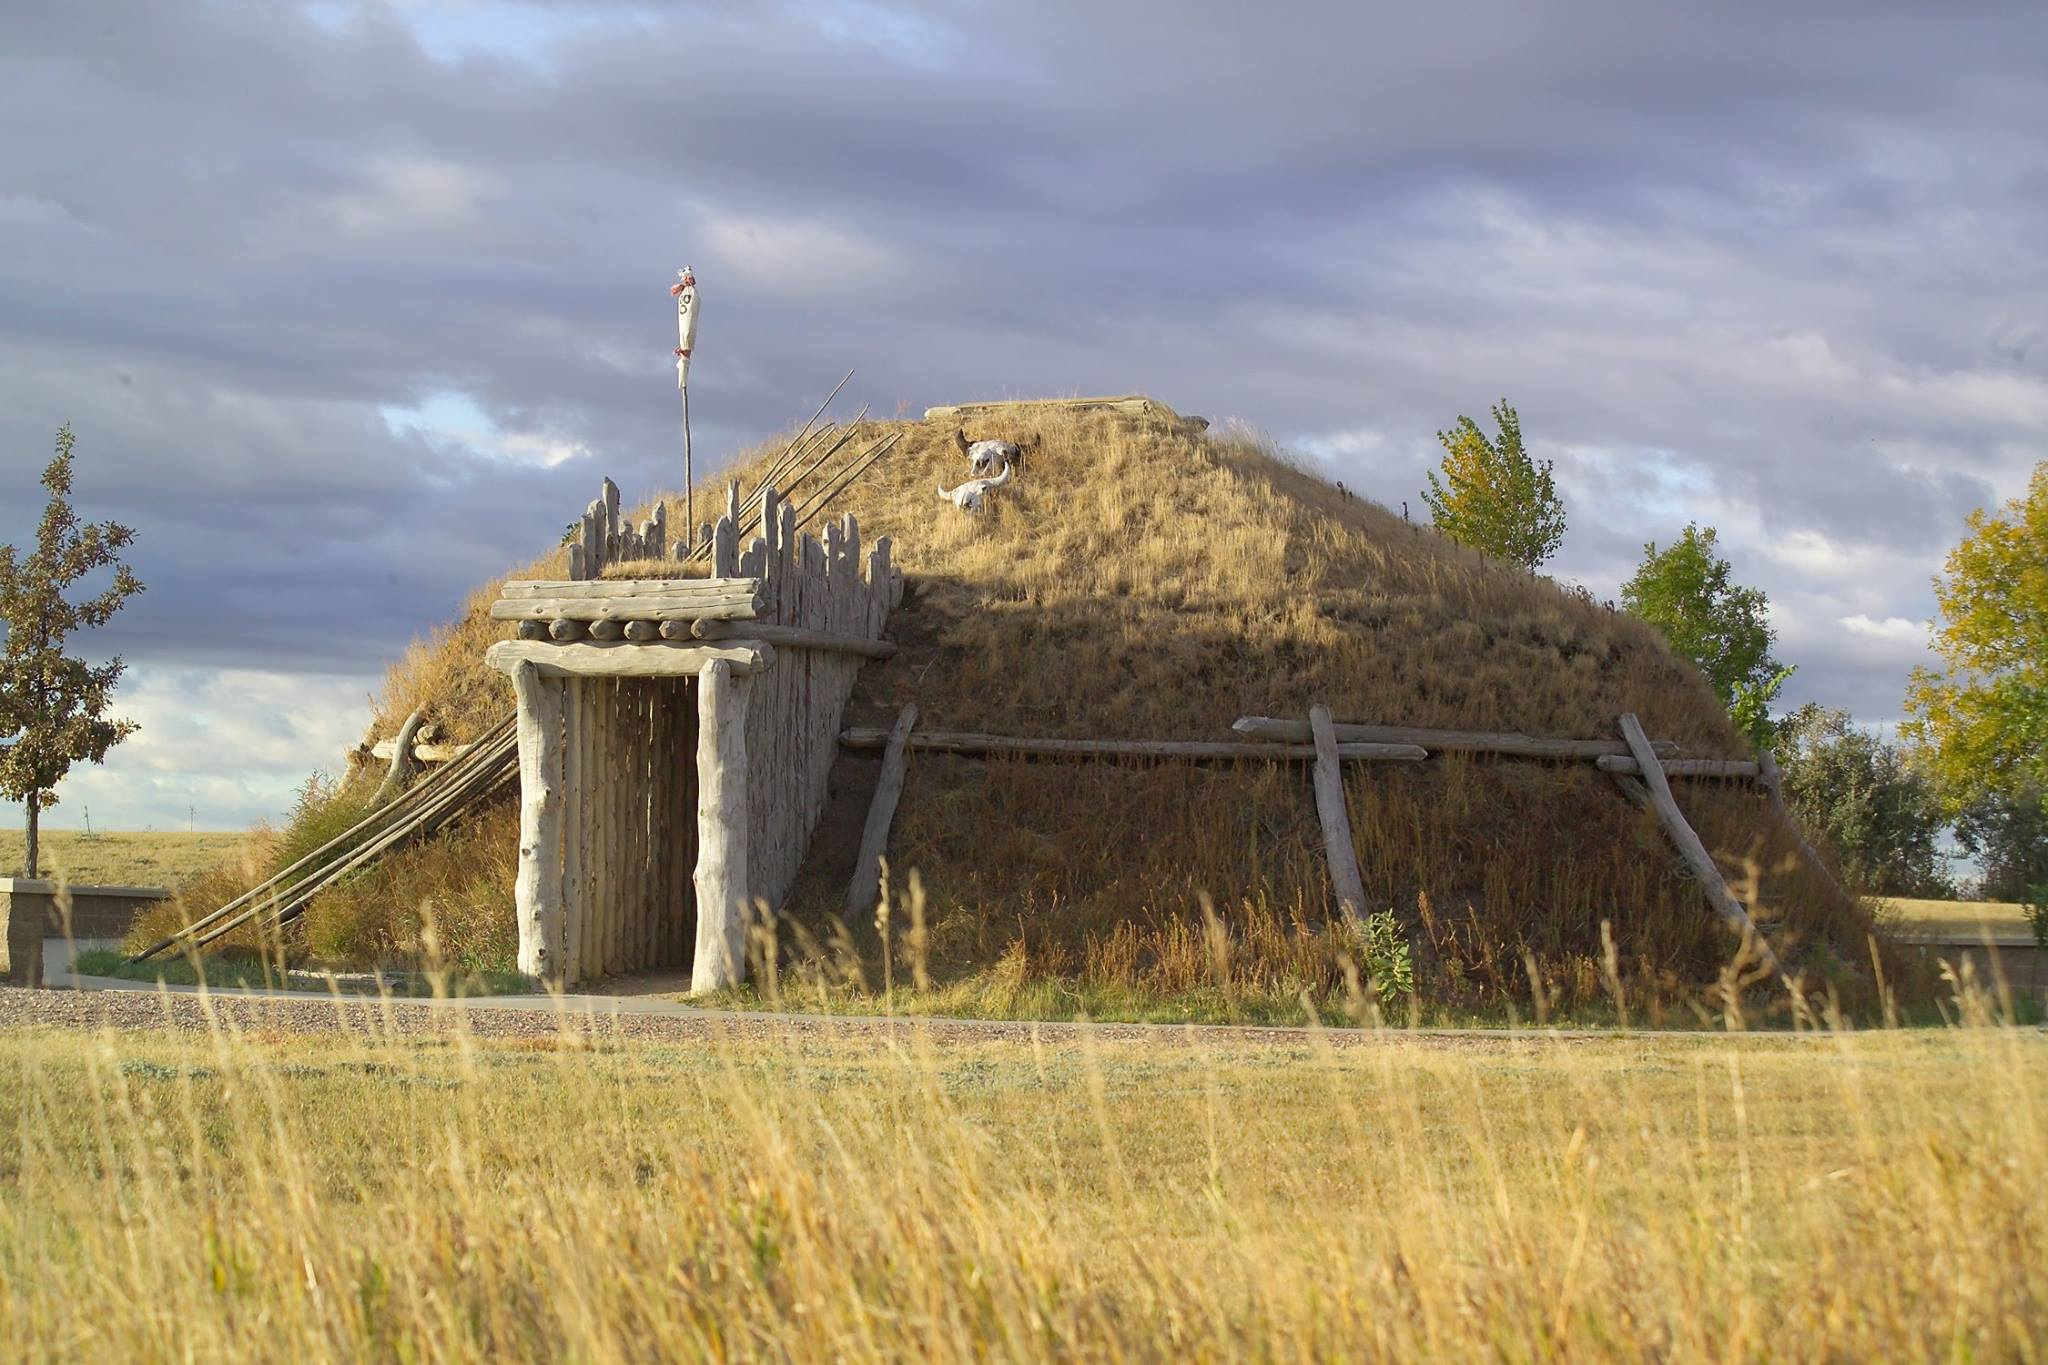 A round lodge covered in grass and dirt with a wooden entry ways.